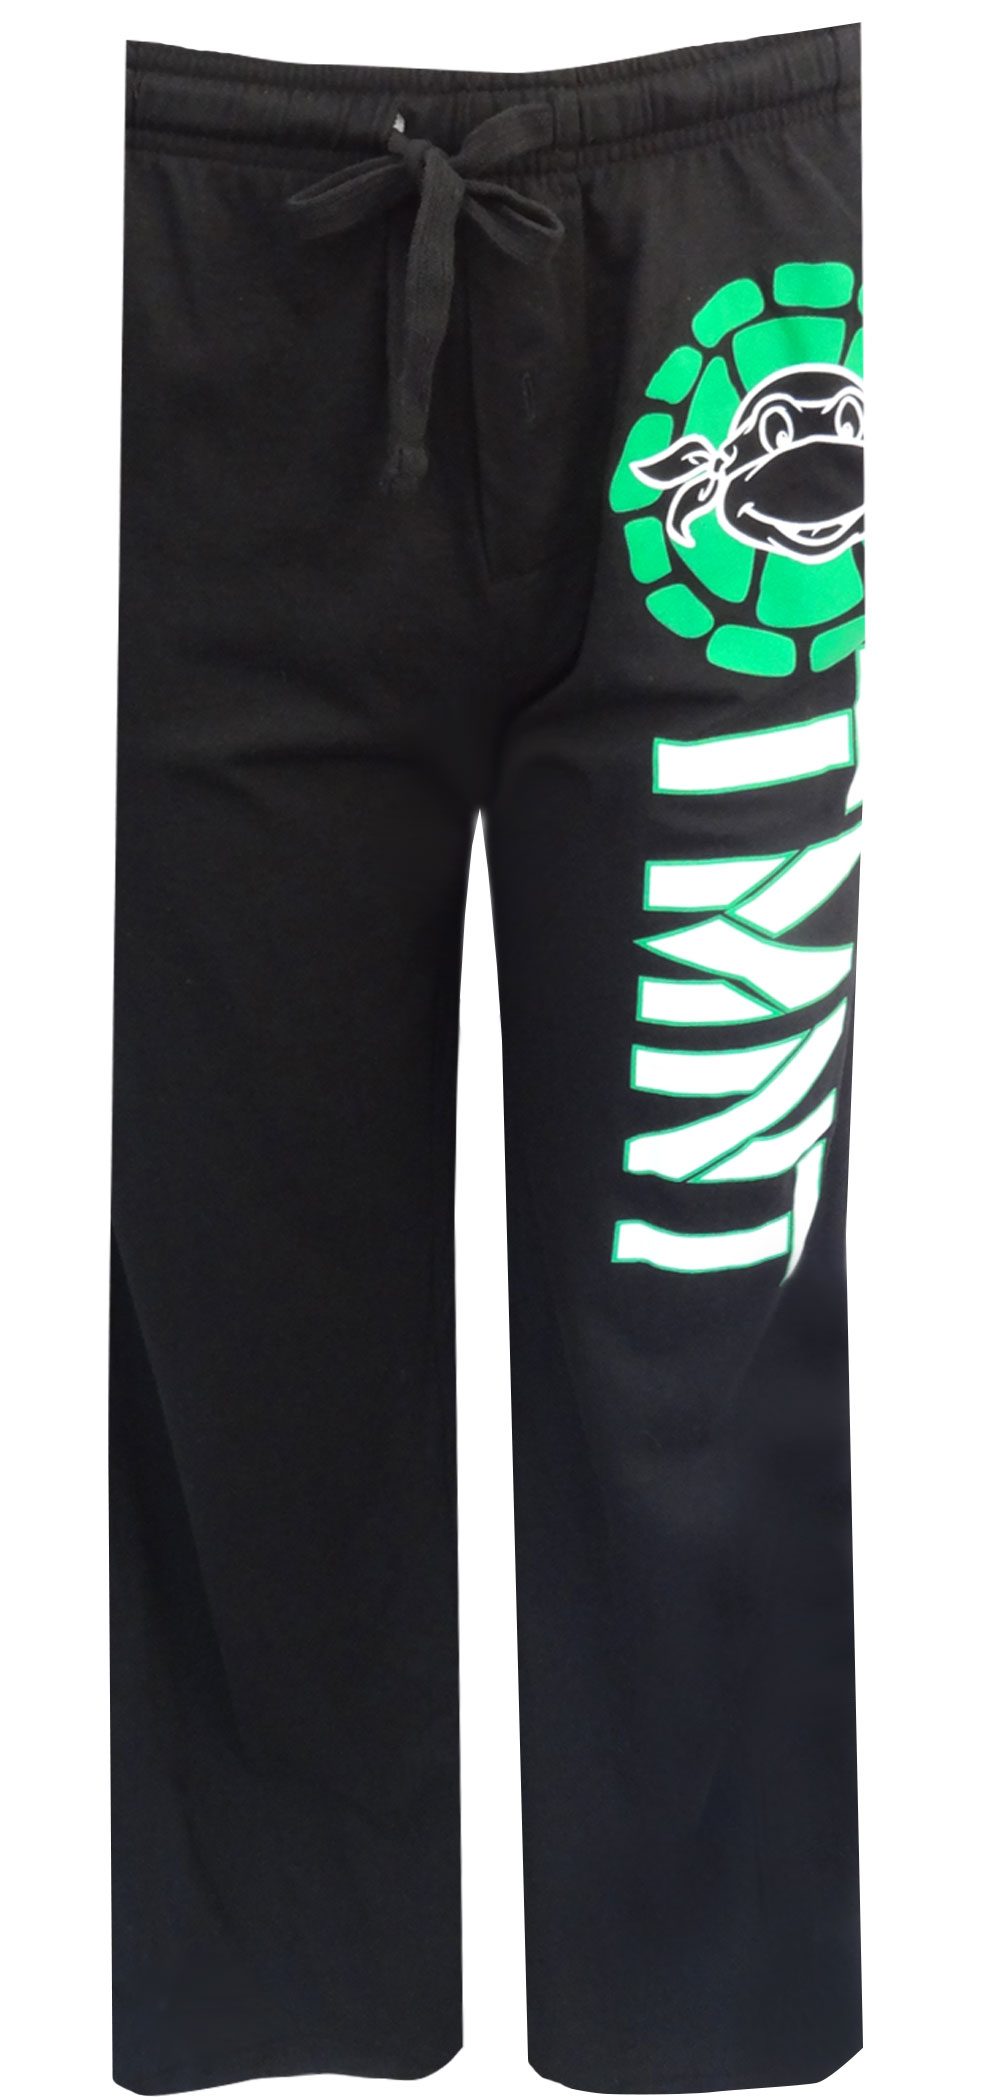 Teenage Mutant Ninja Turtles Black Lounge Pants for men